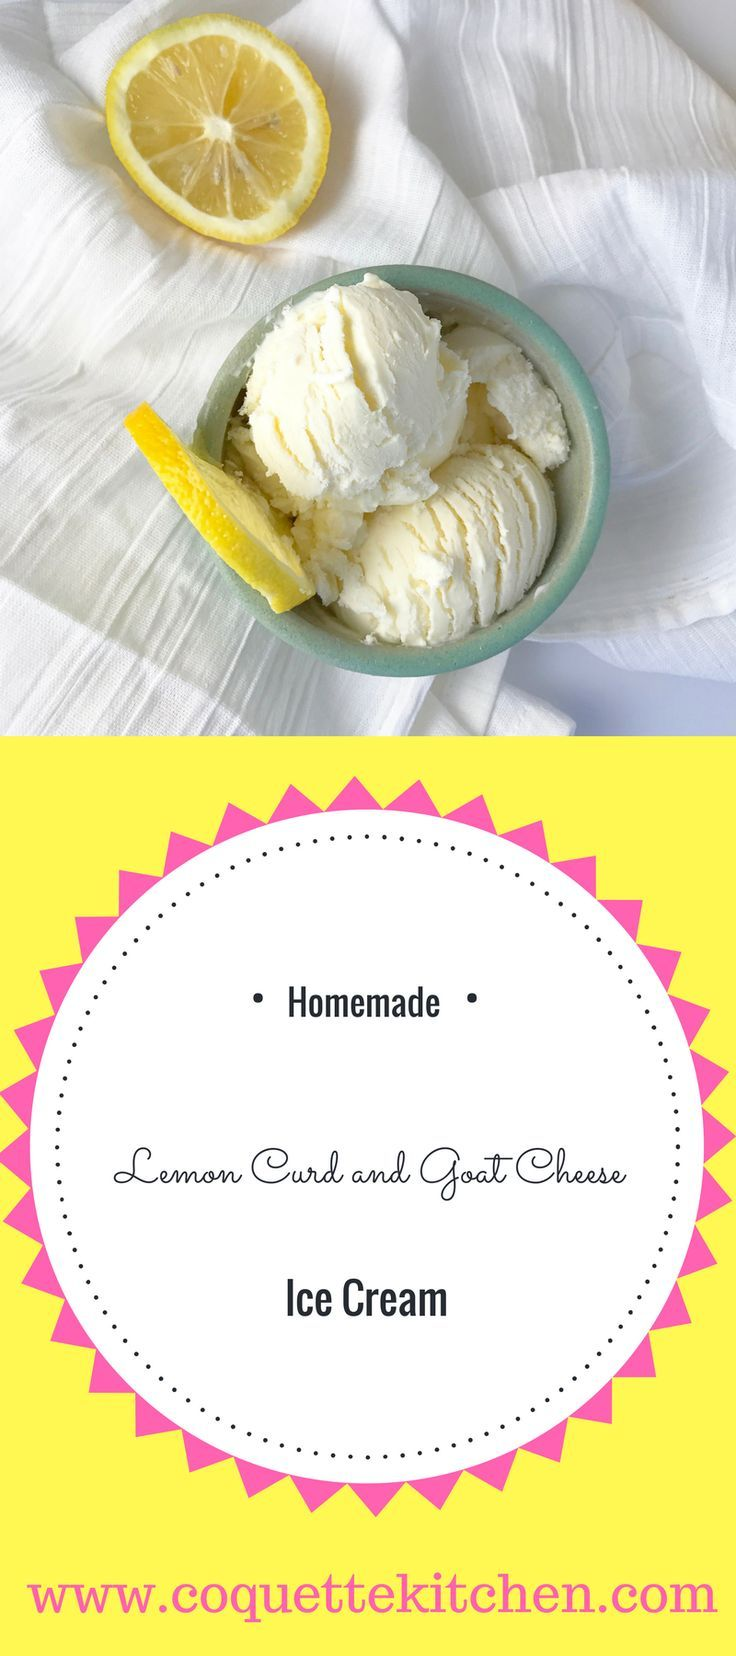 A SUPER quick, easy, and DELICIOUS homemade ice cream recipe for Lemon Curd and Goat Cheese Ice Cream! Like summer in a bowl! www.coquettekitchen.com